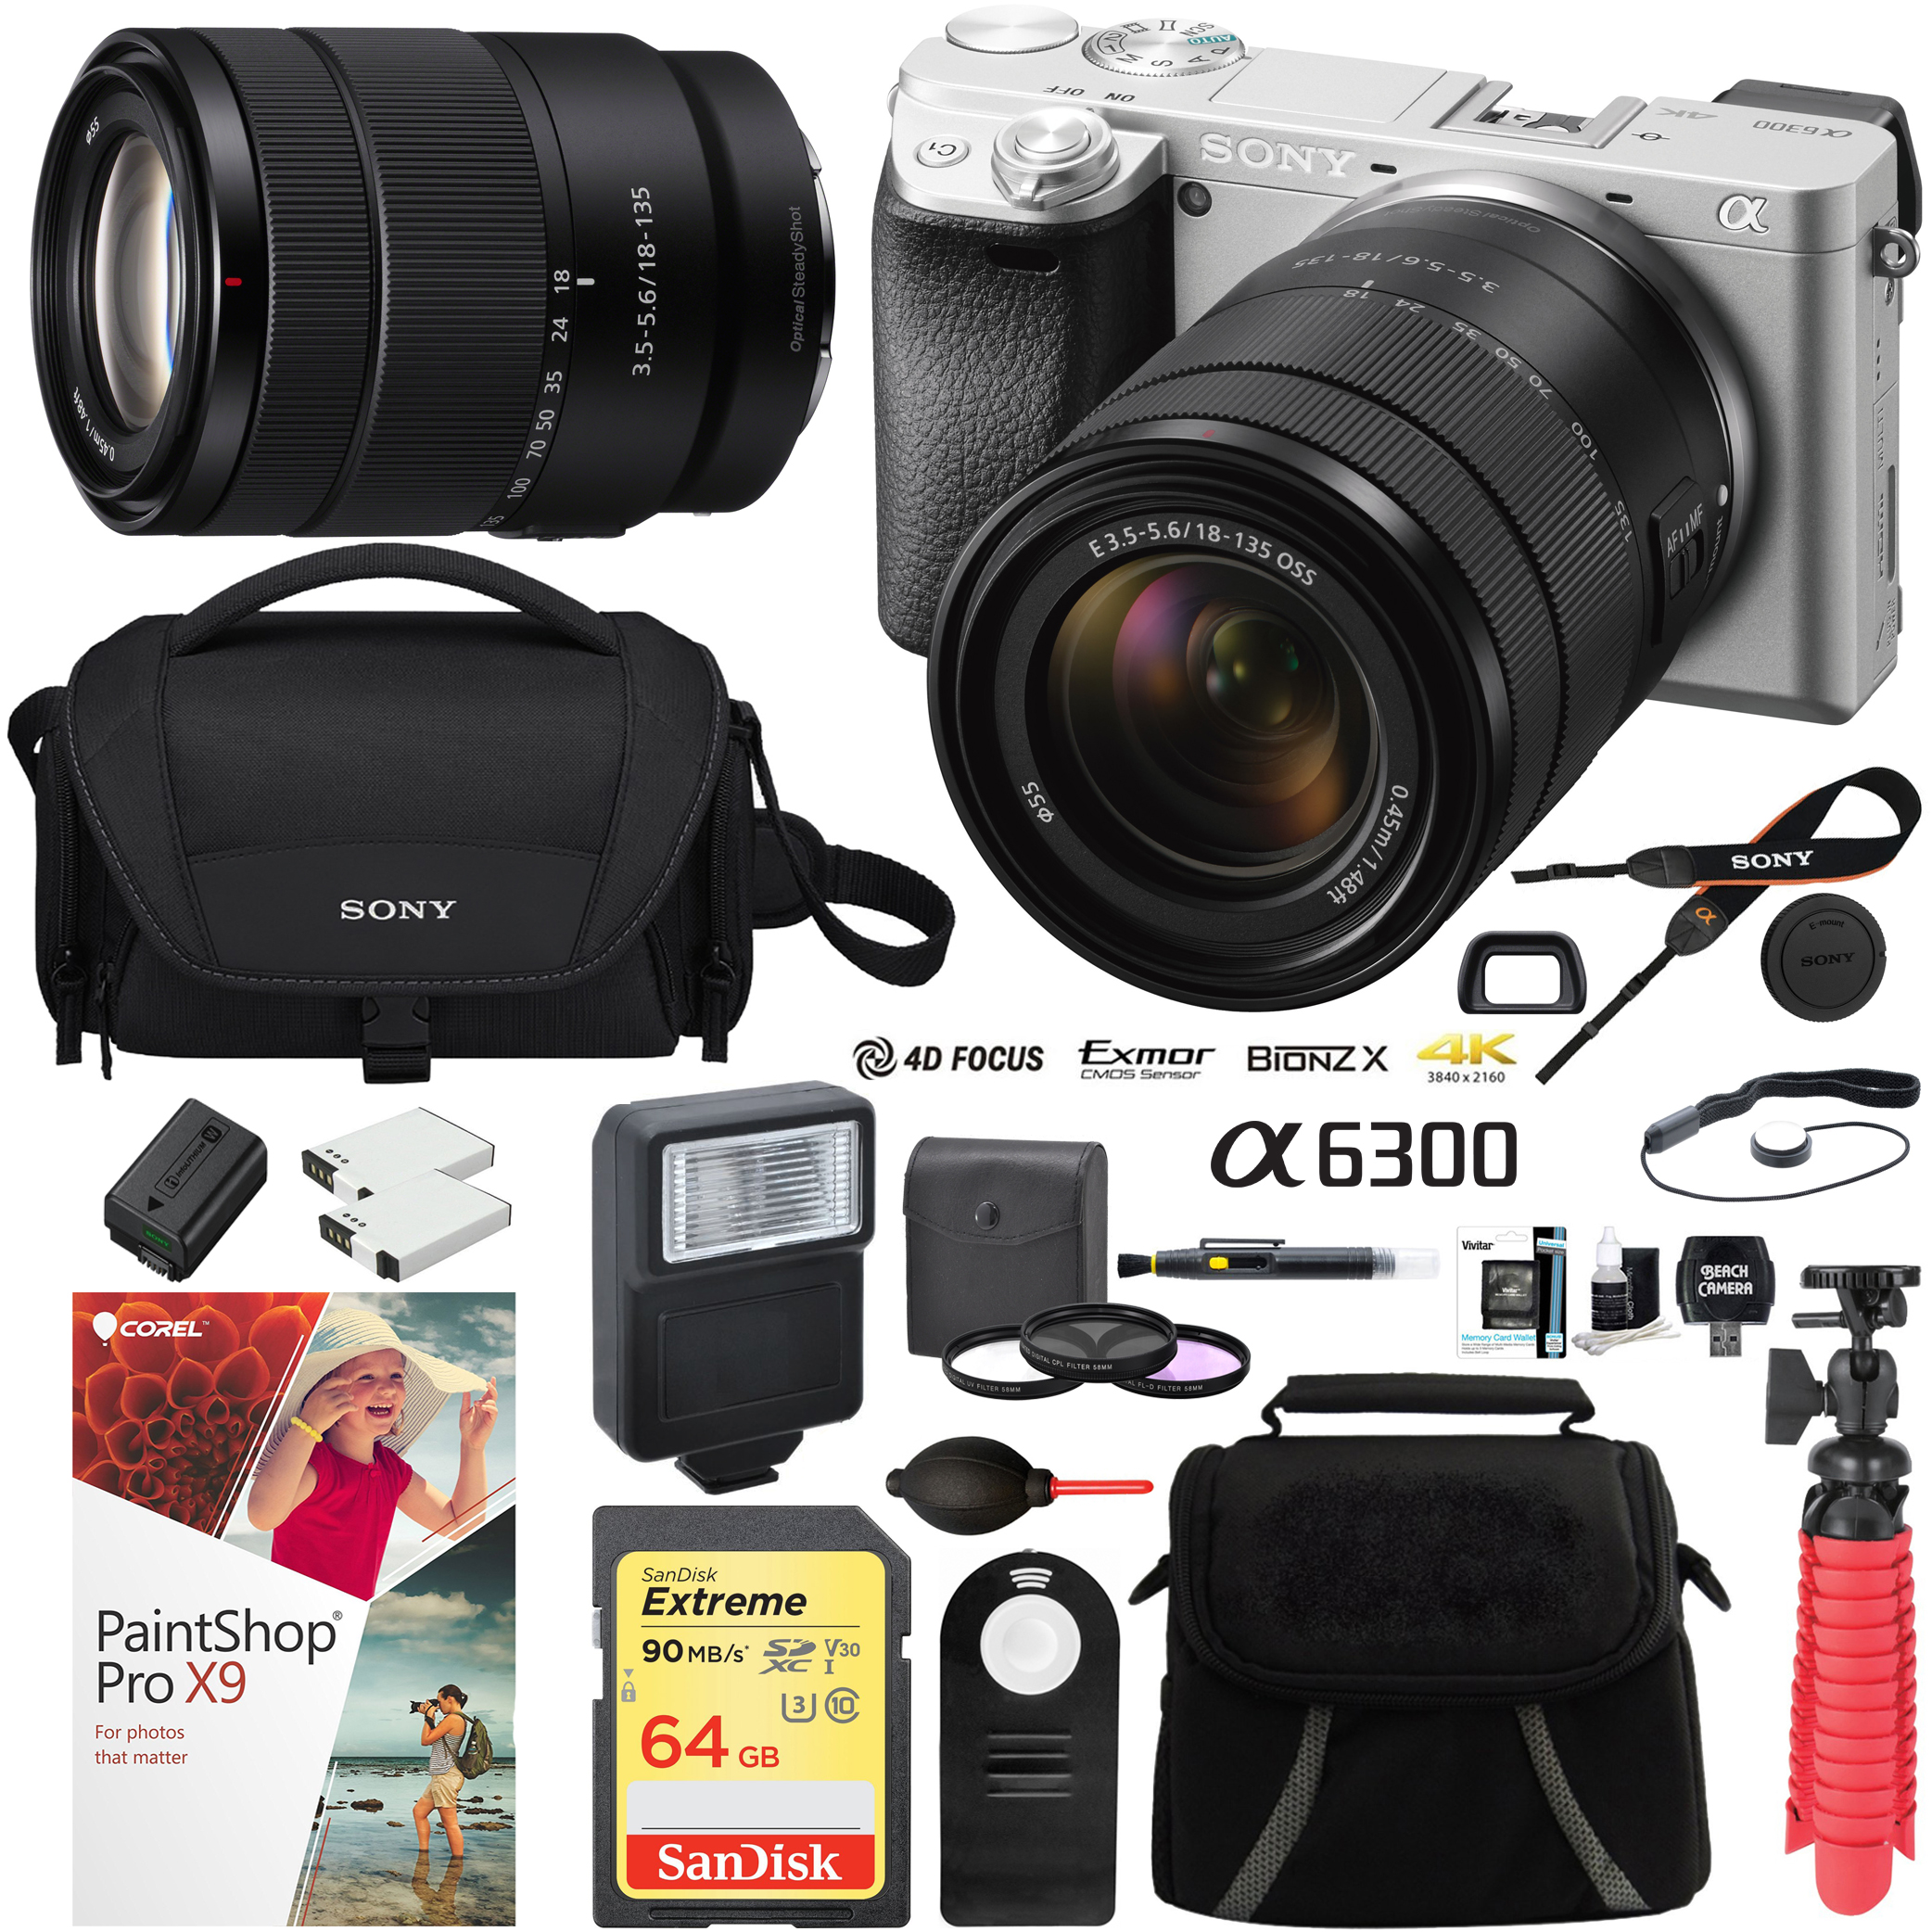 Sony ILCE-6300M/S a6300 4K Mirrorless Camera (Silver) with 18-135mm F3.5-5.6 OSS Zoom Lens and Case 64GB SDXC Memory Card Pro Photography Bundle